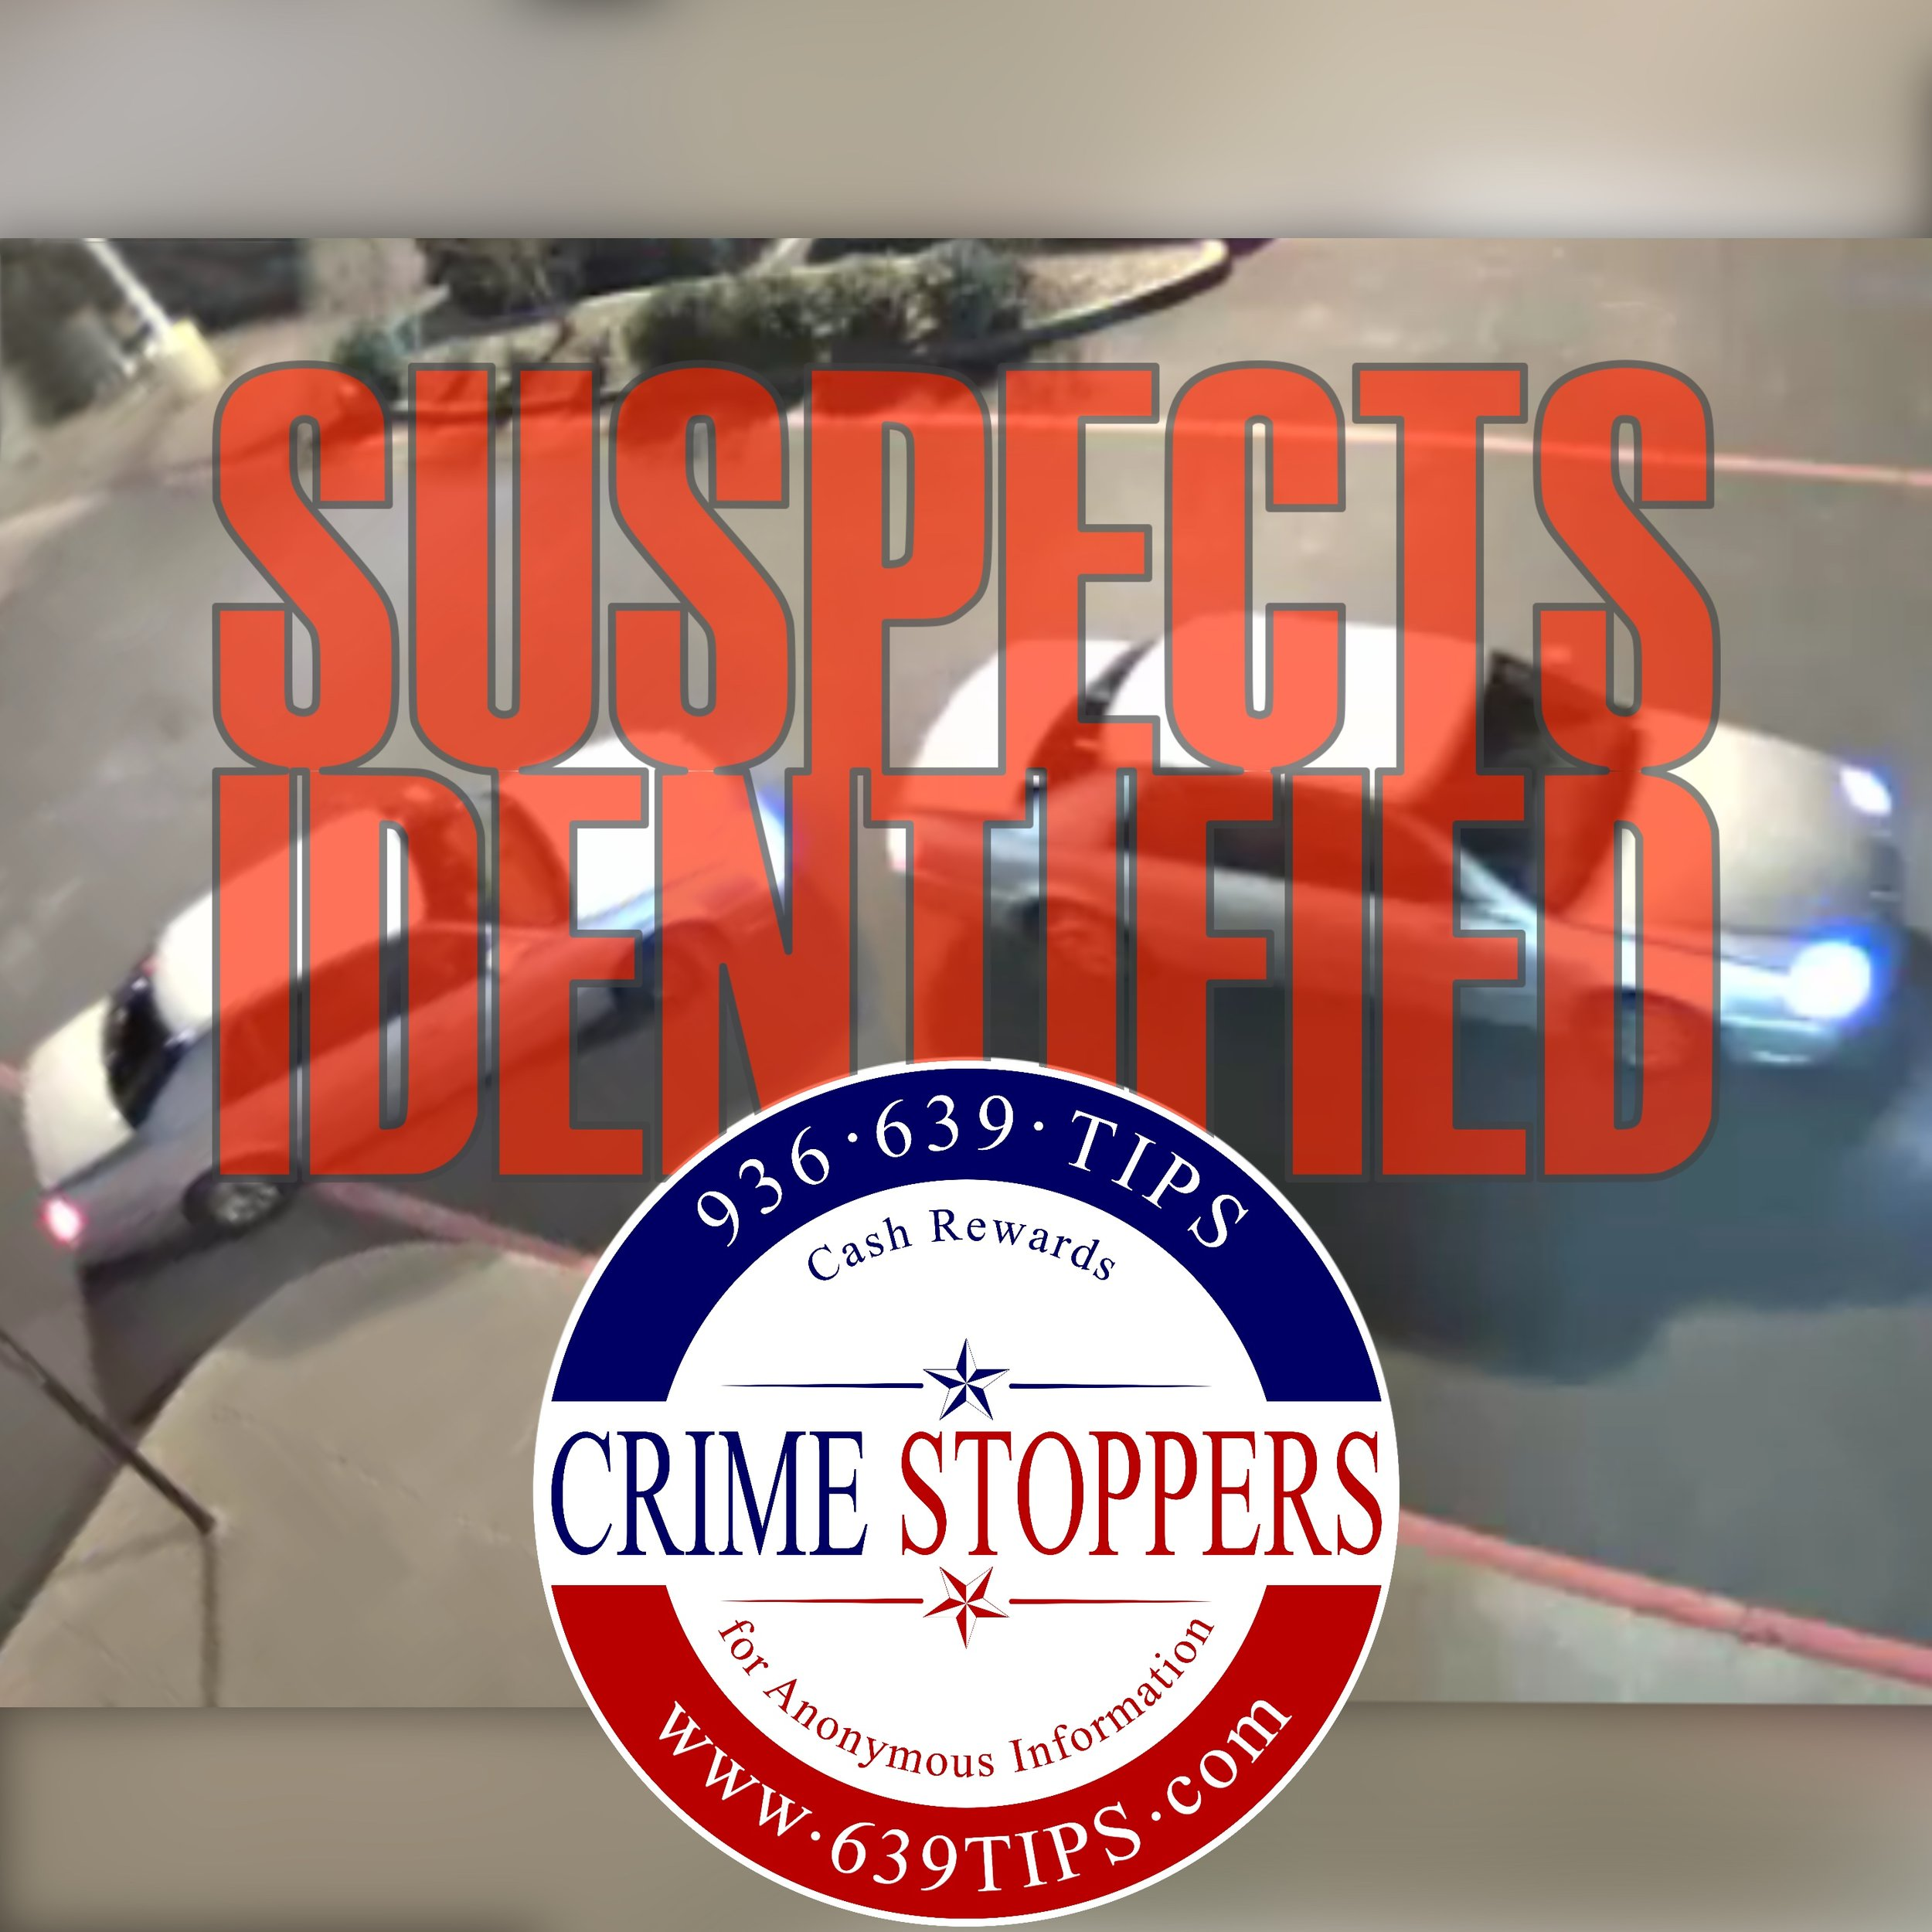 Crime of the Week 20190415 Suspect Vehicle Identified.jpg